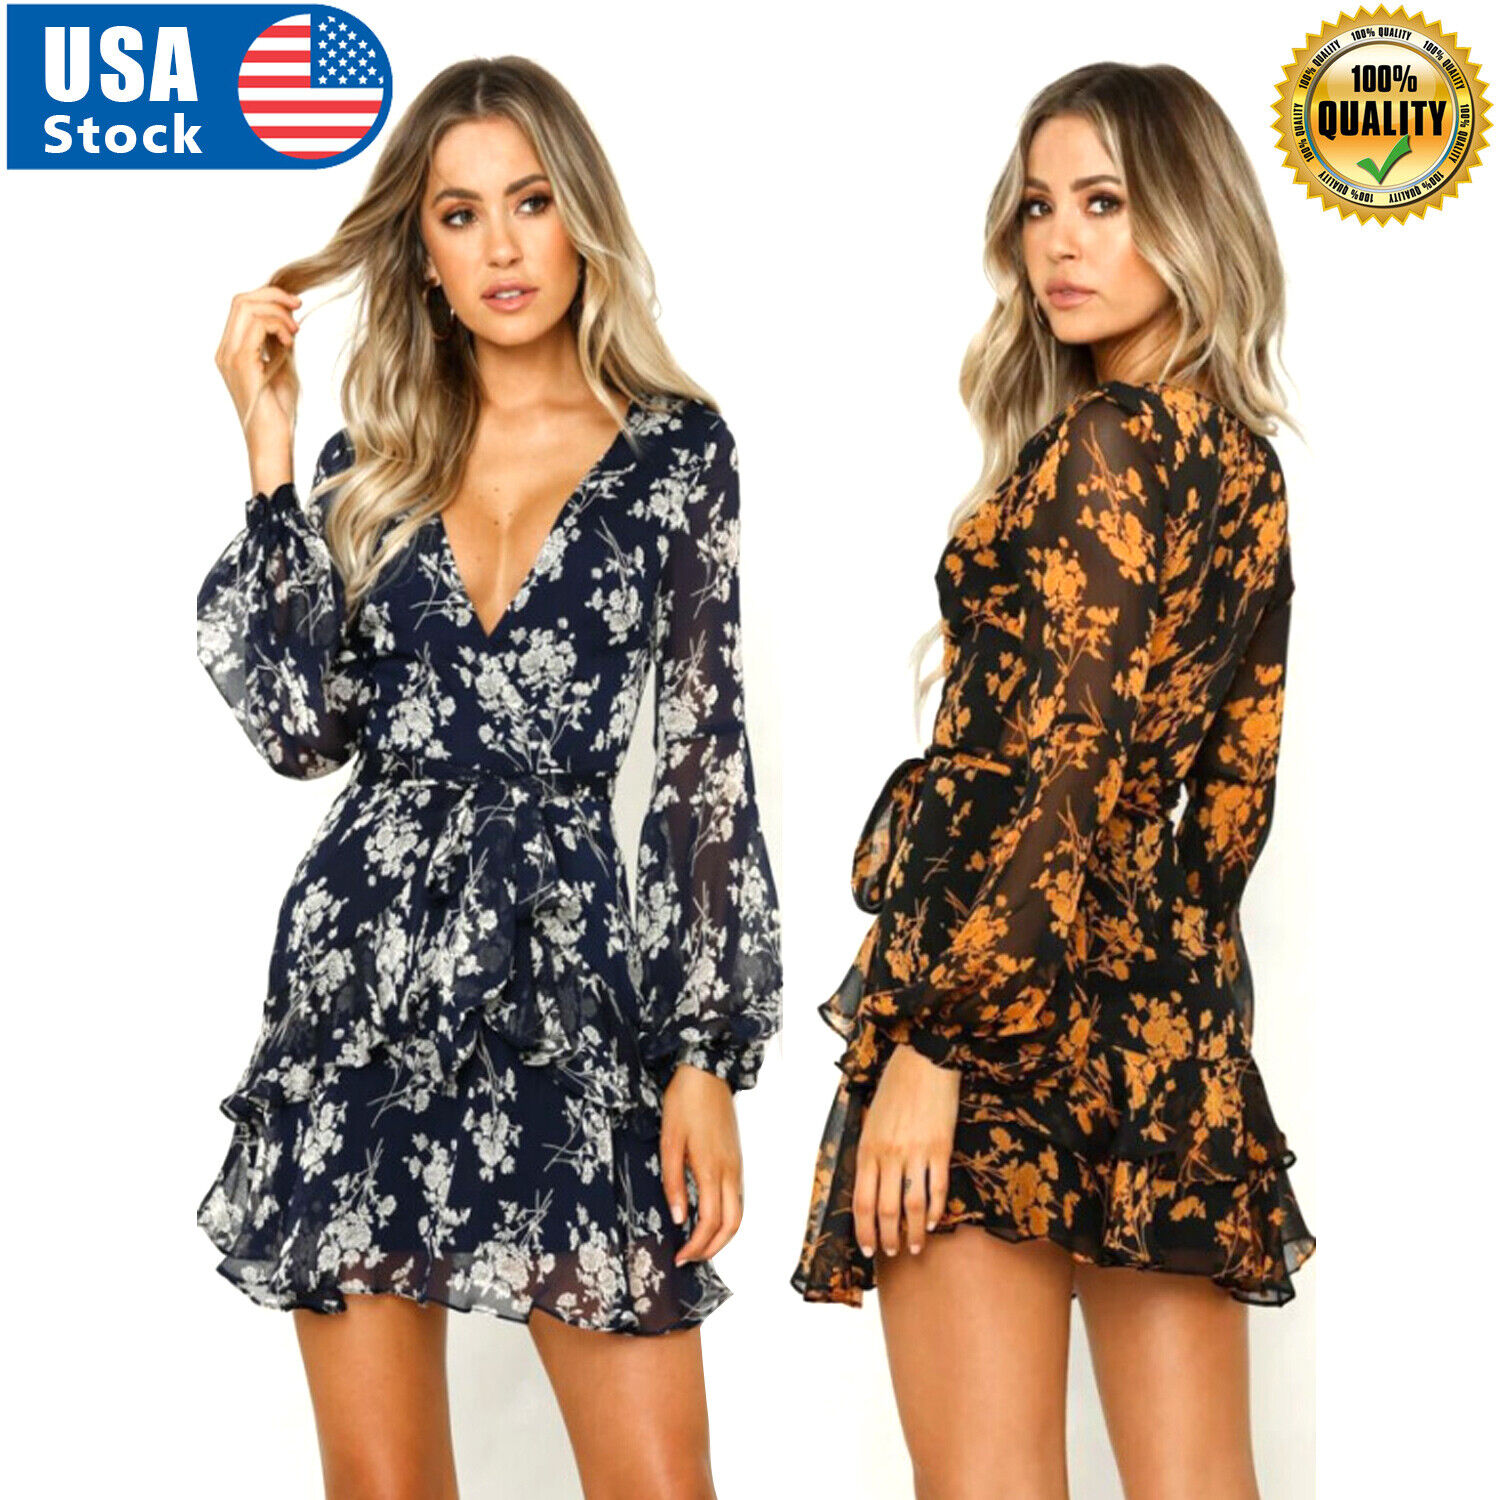 Women Spring Summer Sexy V Neck Long Sleeve Printed Mini Short Dresses(S-XXL) Clothing, Shoes & Accessories